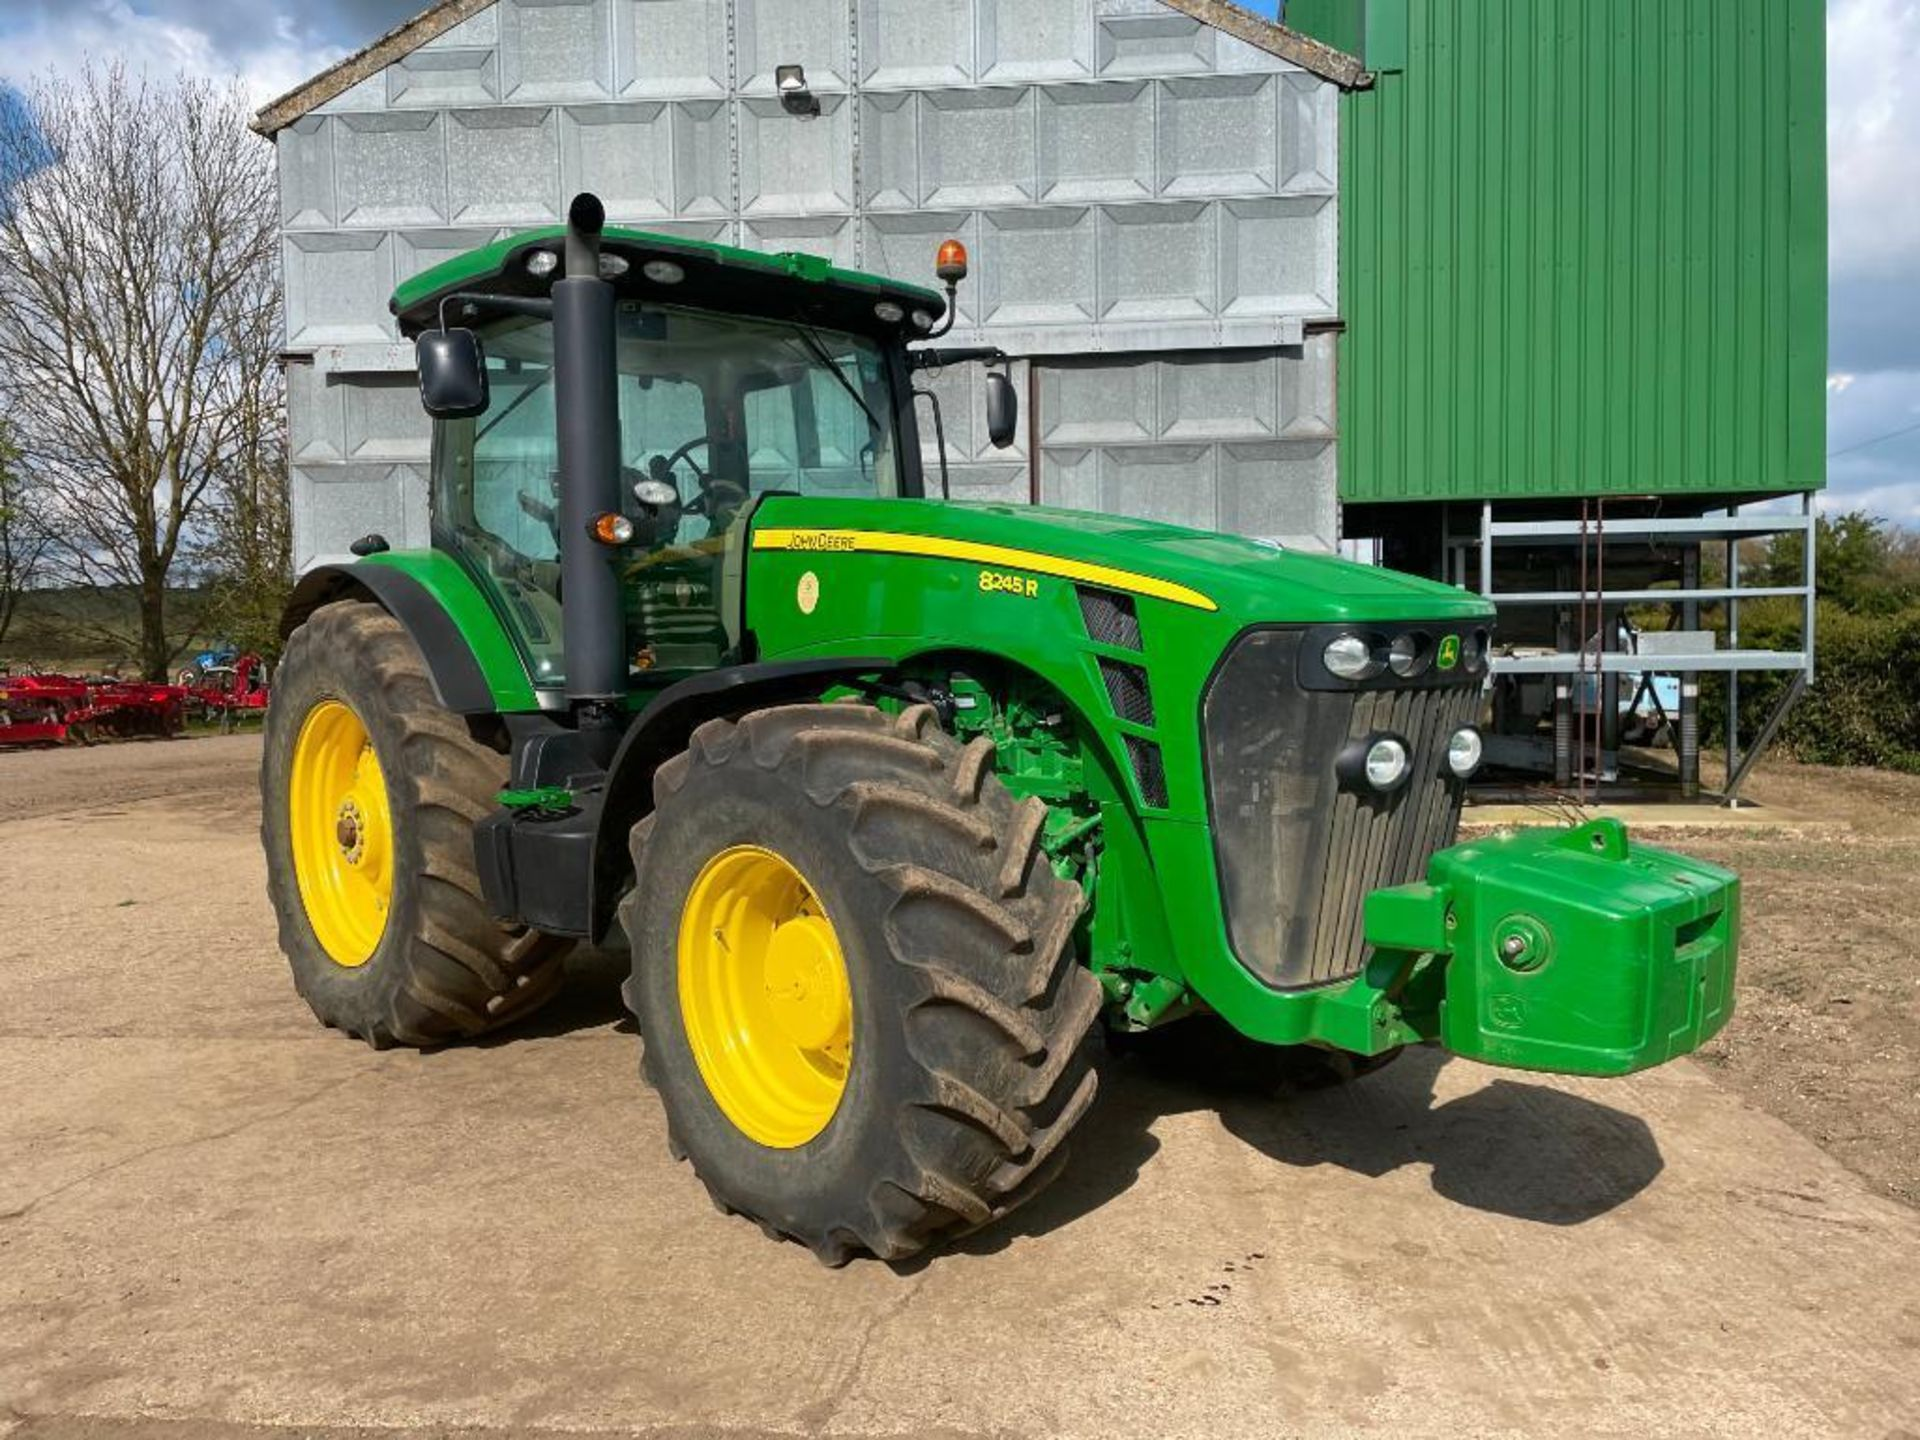 2011 John Deere 8245R 40kph Powershift with 4 electric spools, TLS front suspension and 900kg front - Image 3 of 18